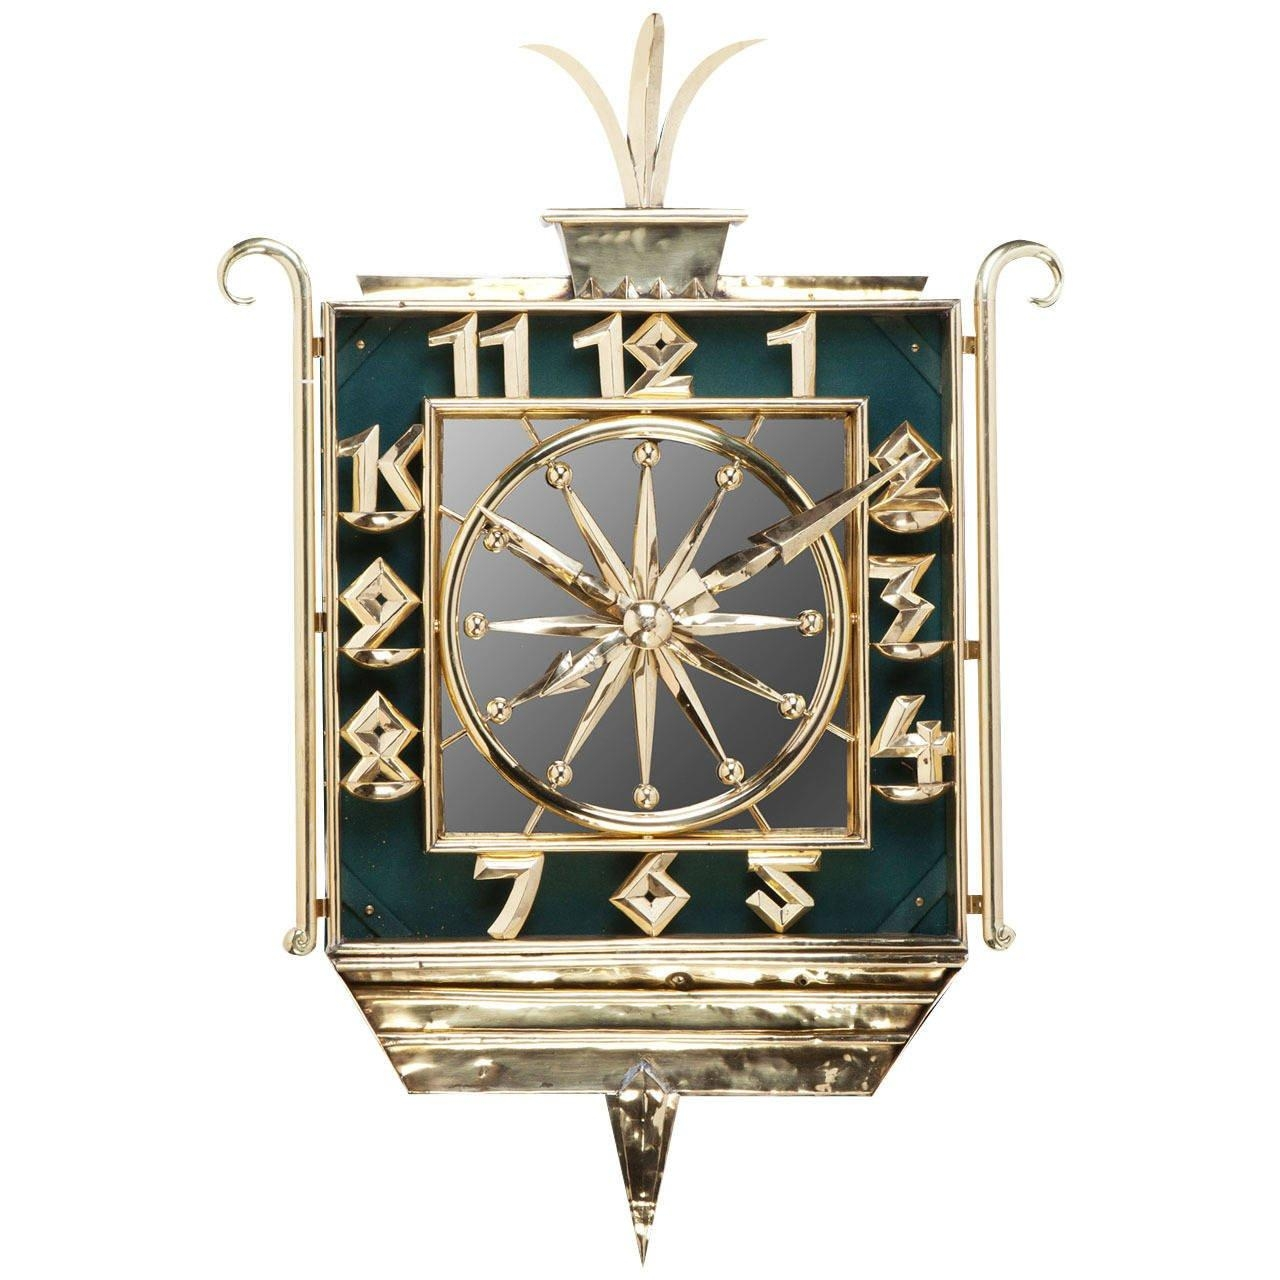 Art Deco Brass And Mirrored Wall Clock At 1Stdibs In Art Deco Wall Clocks (Image 2 of 20)